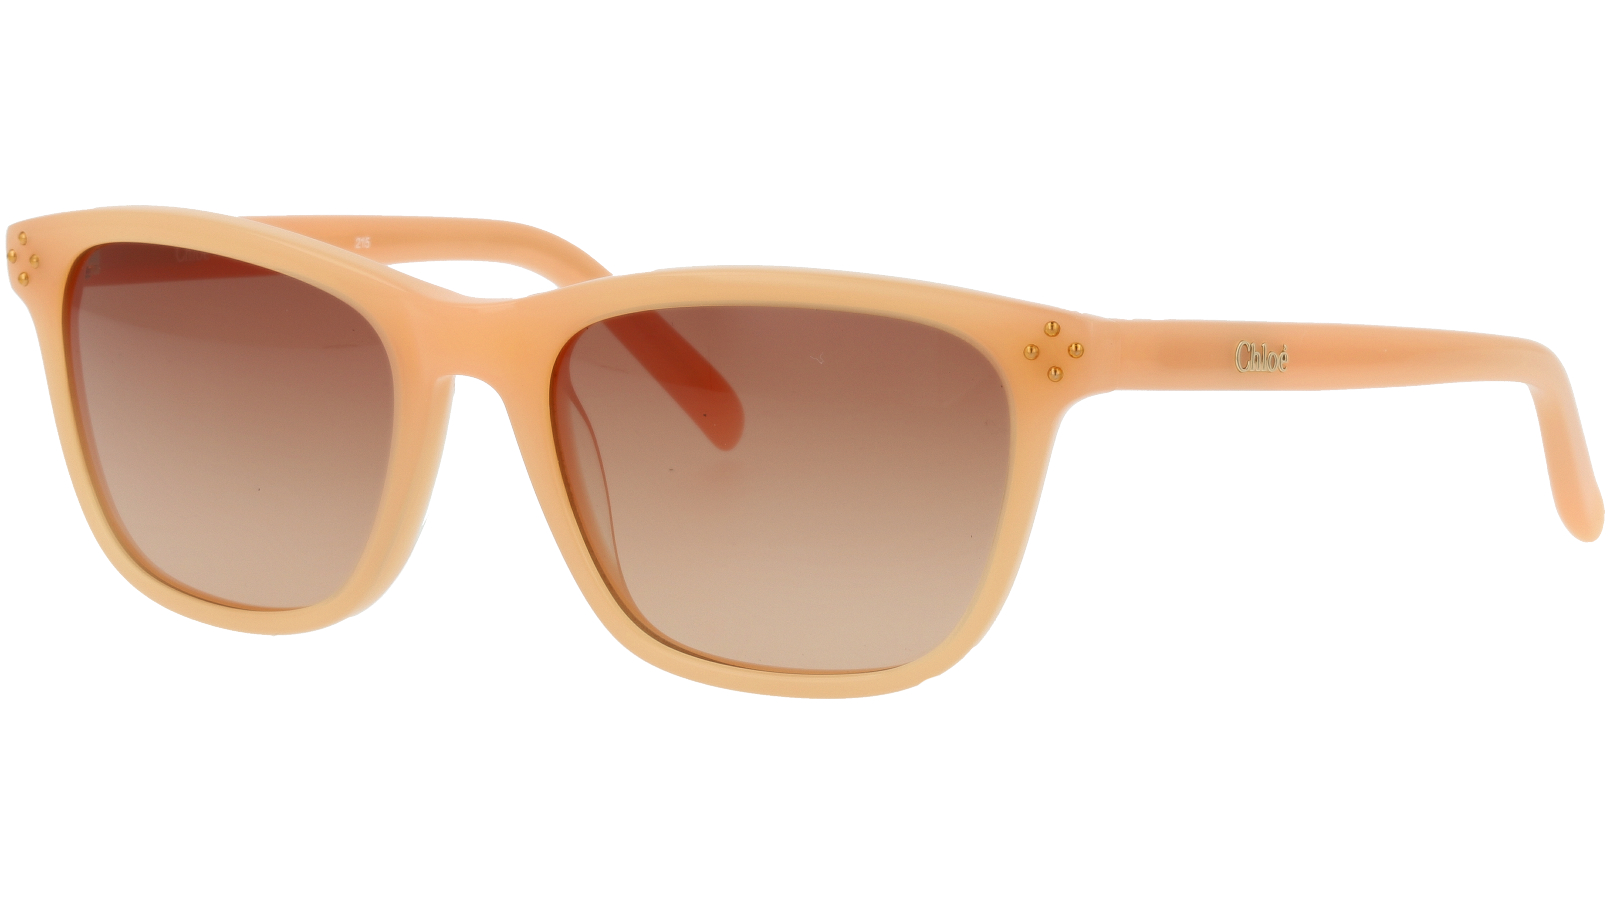 CHLOE CE3604S 749 49 Orange Brown Sunglasses